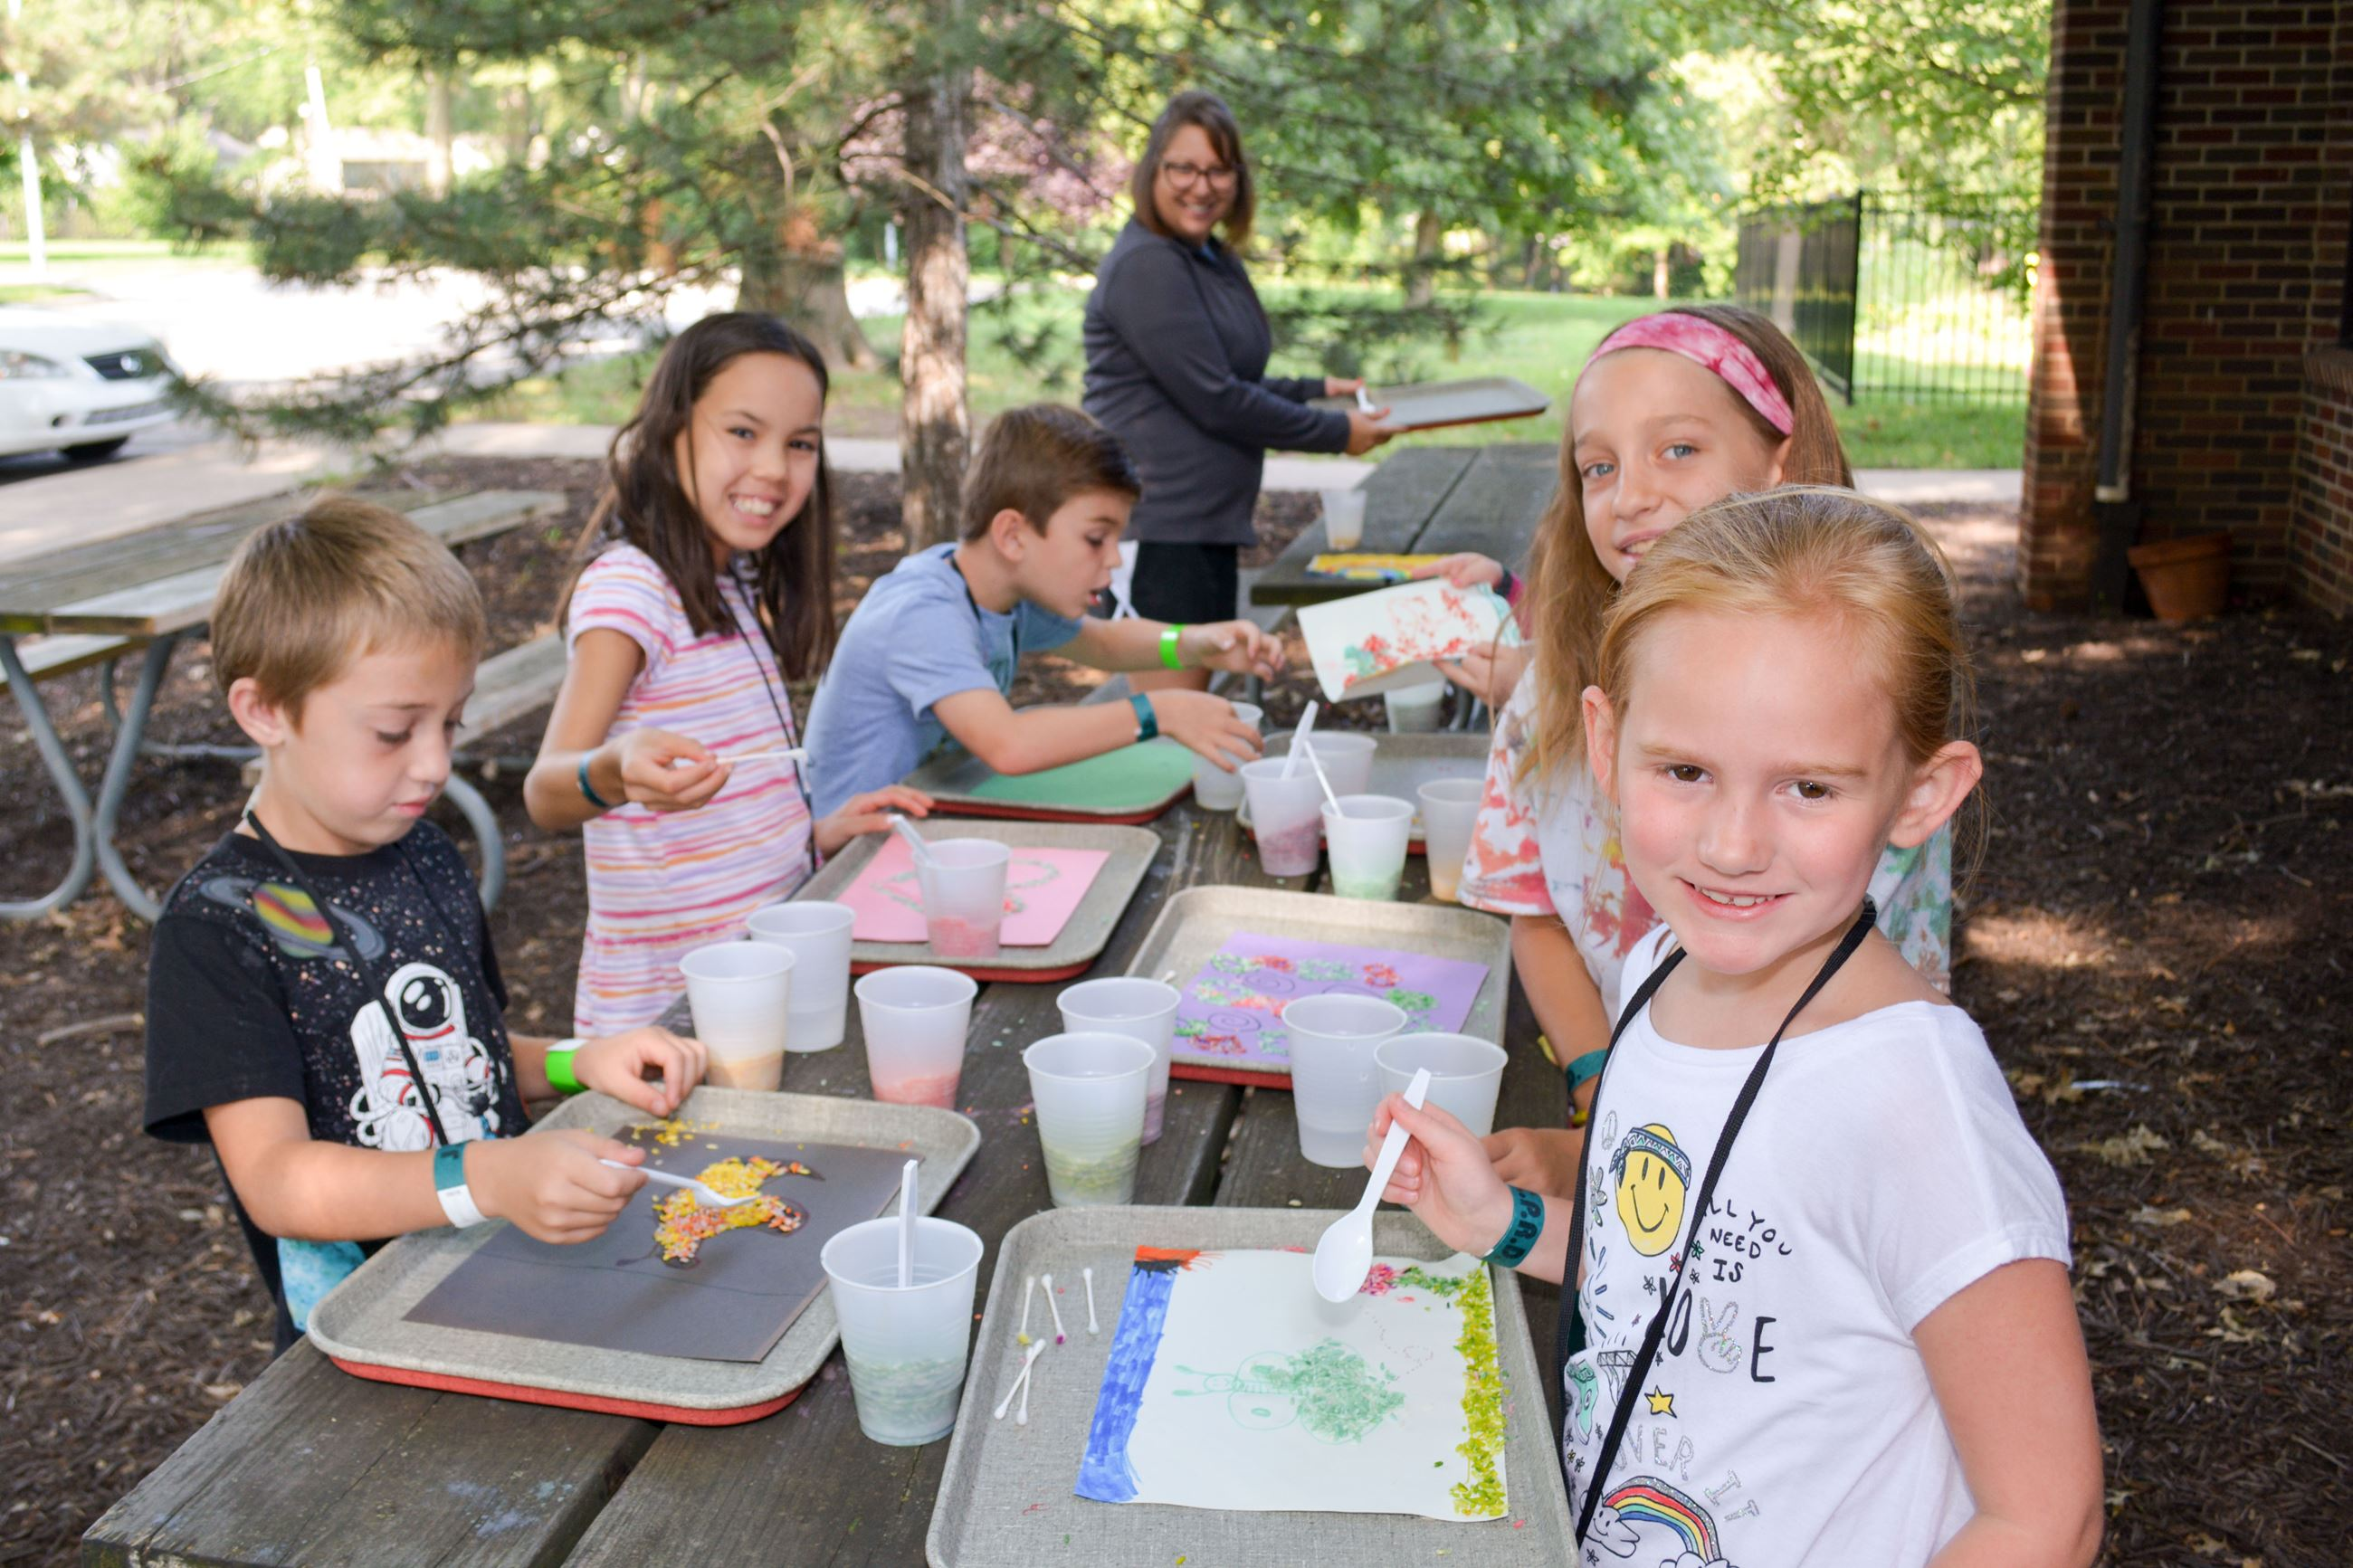 Kids completing summer camp art project